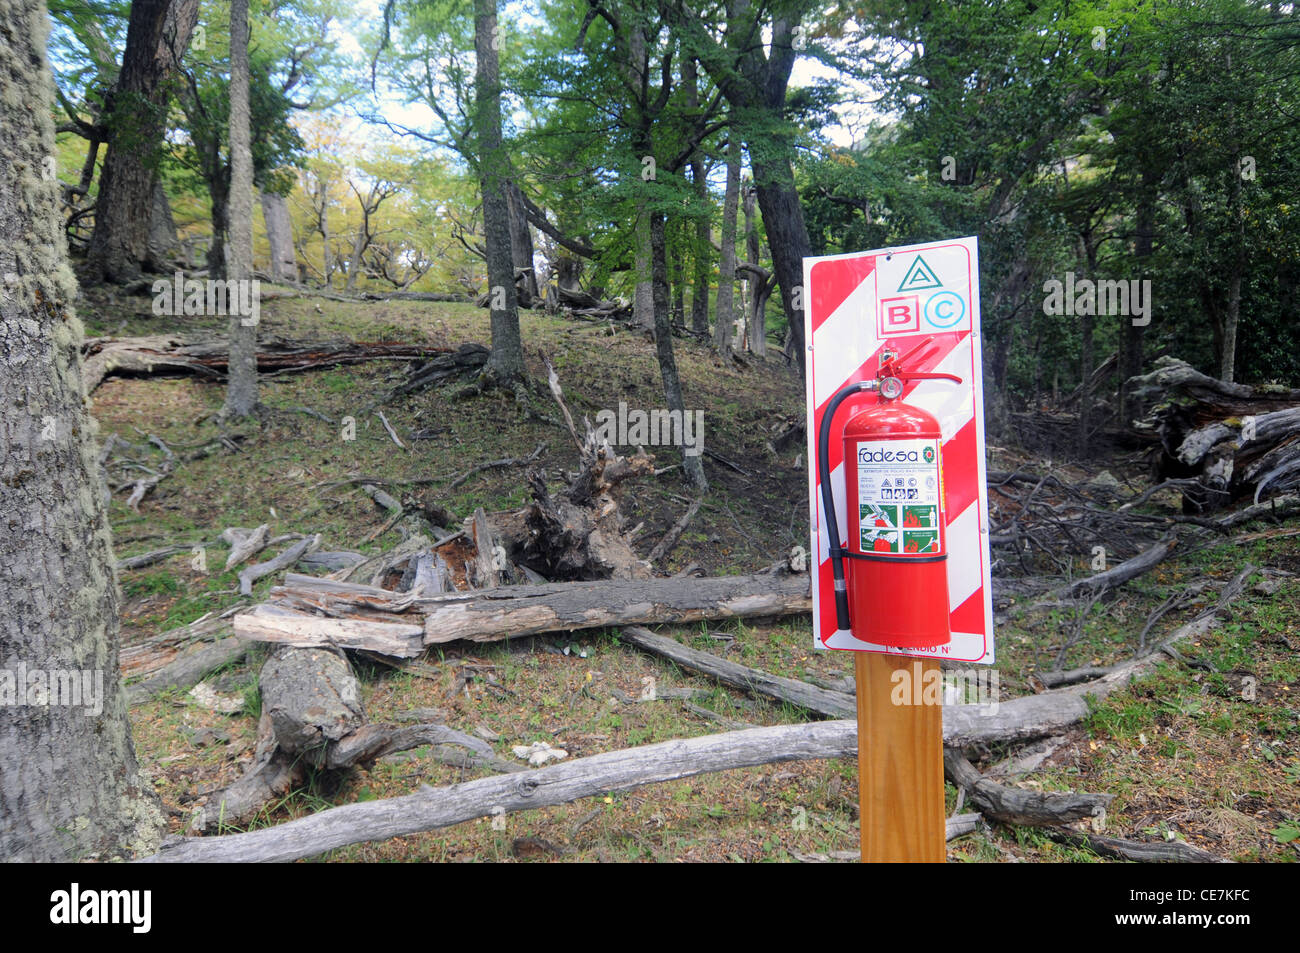 Fire extinguisher in the forest during high-risk wildfire season, Los Glaciares National Park, Patagonia, Argentina. - Stock Image